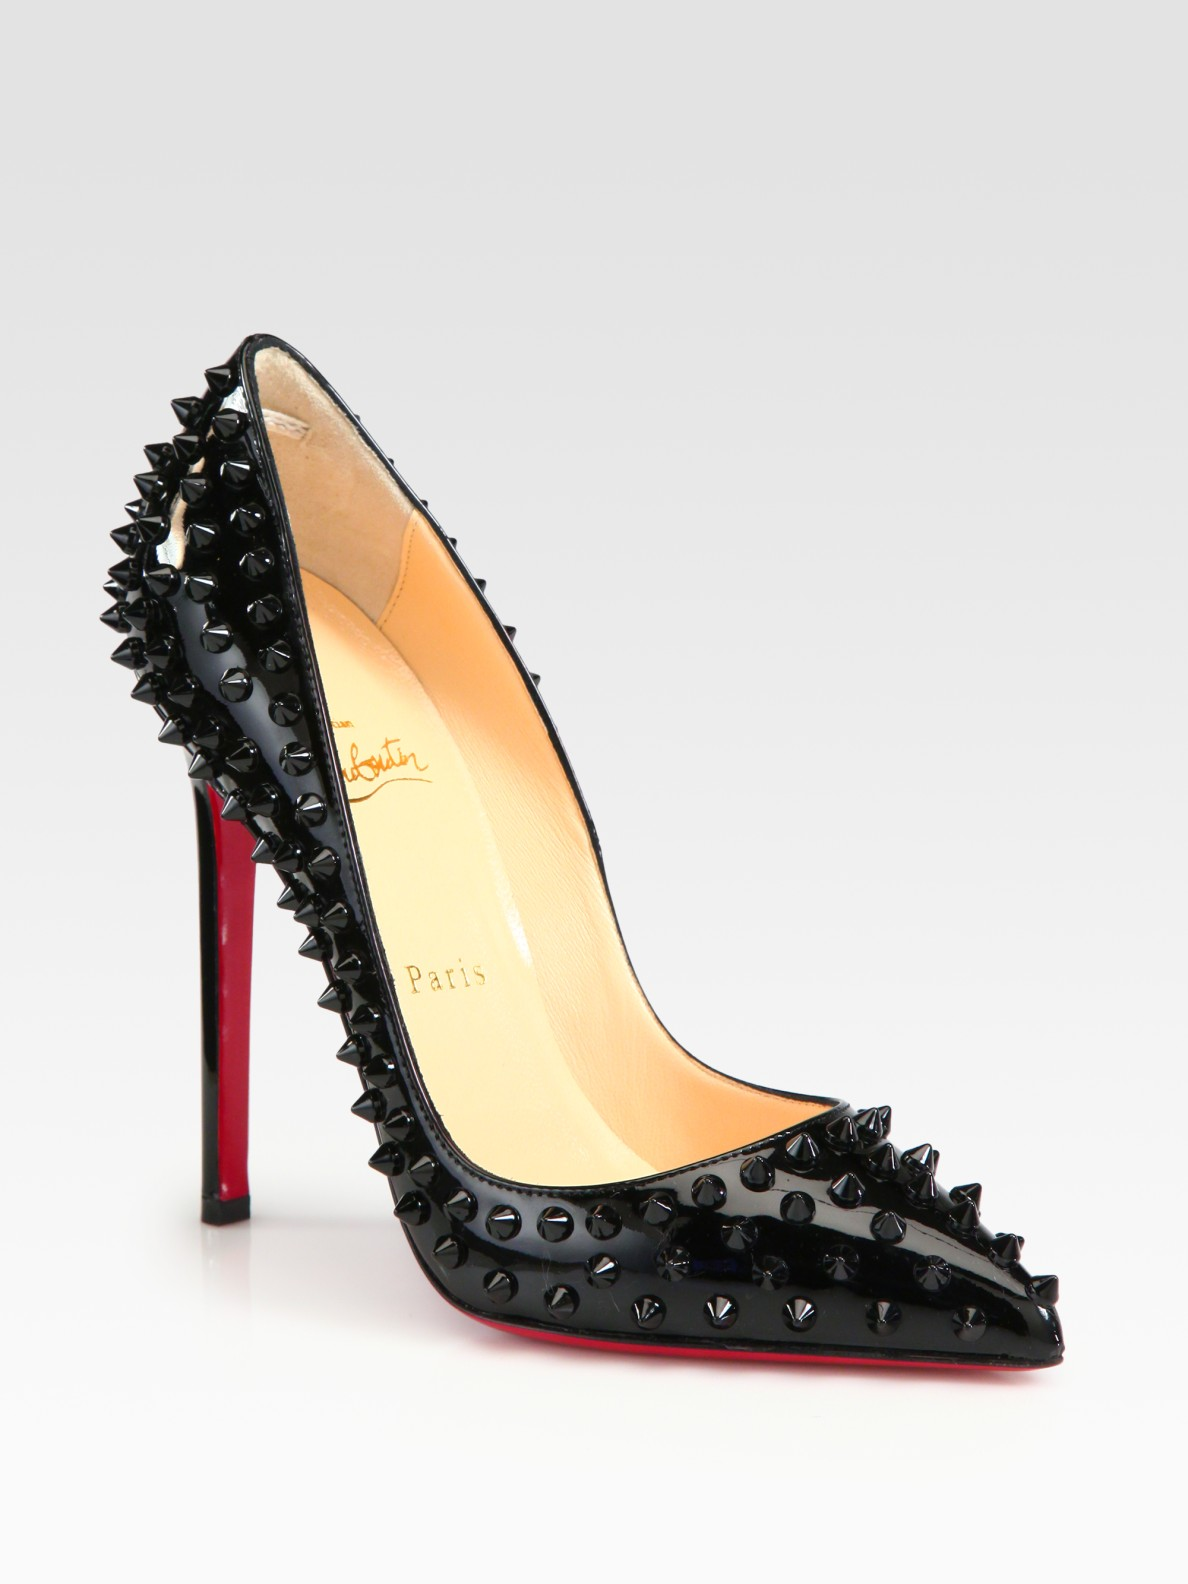 Louboutin Black Studded Shoes